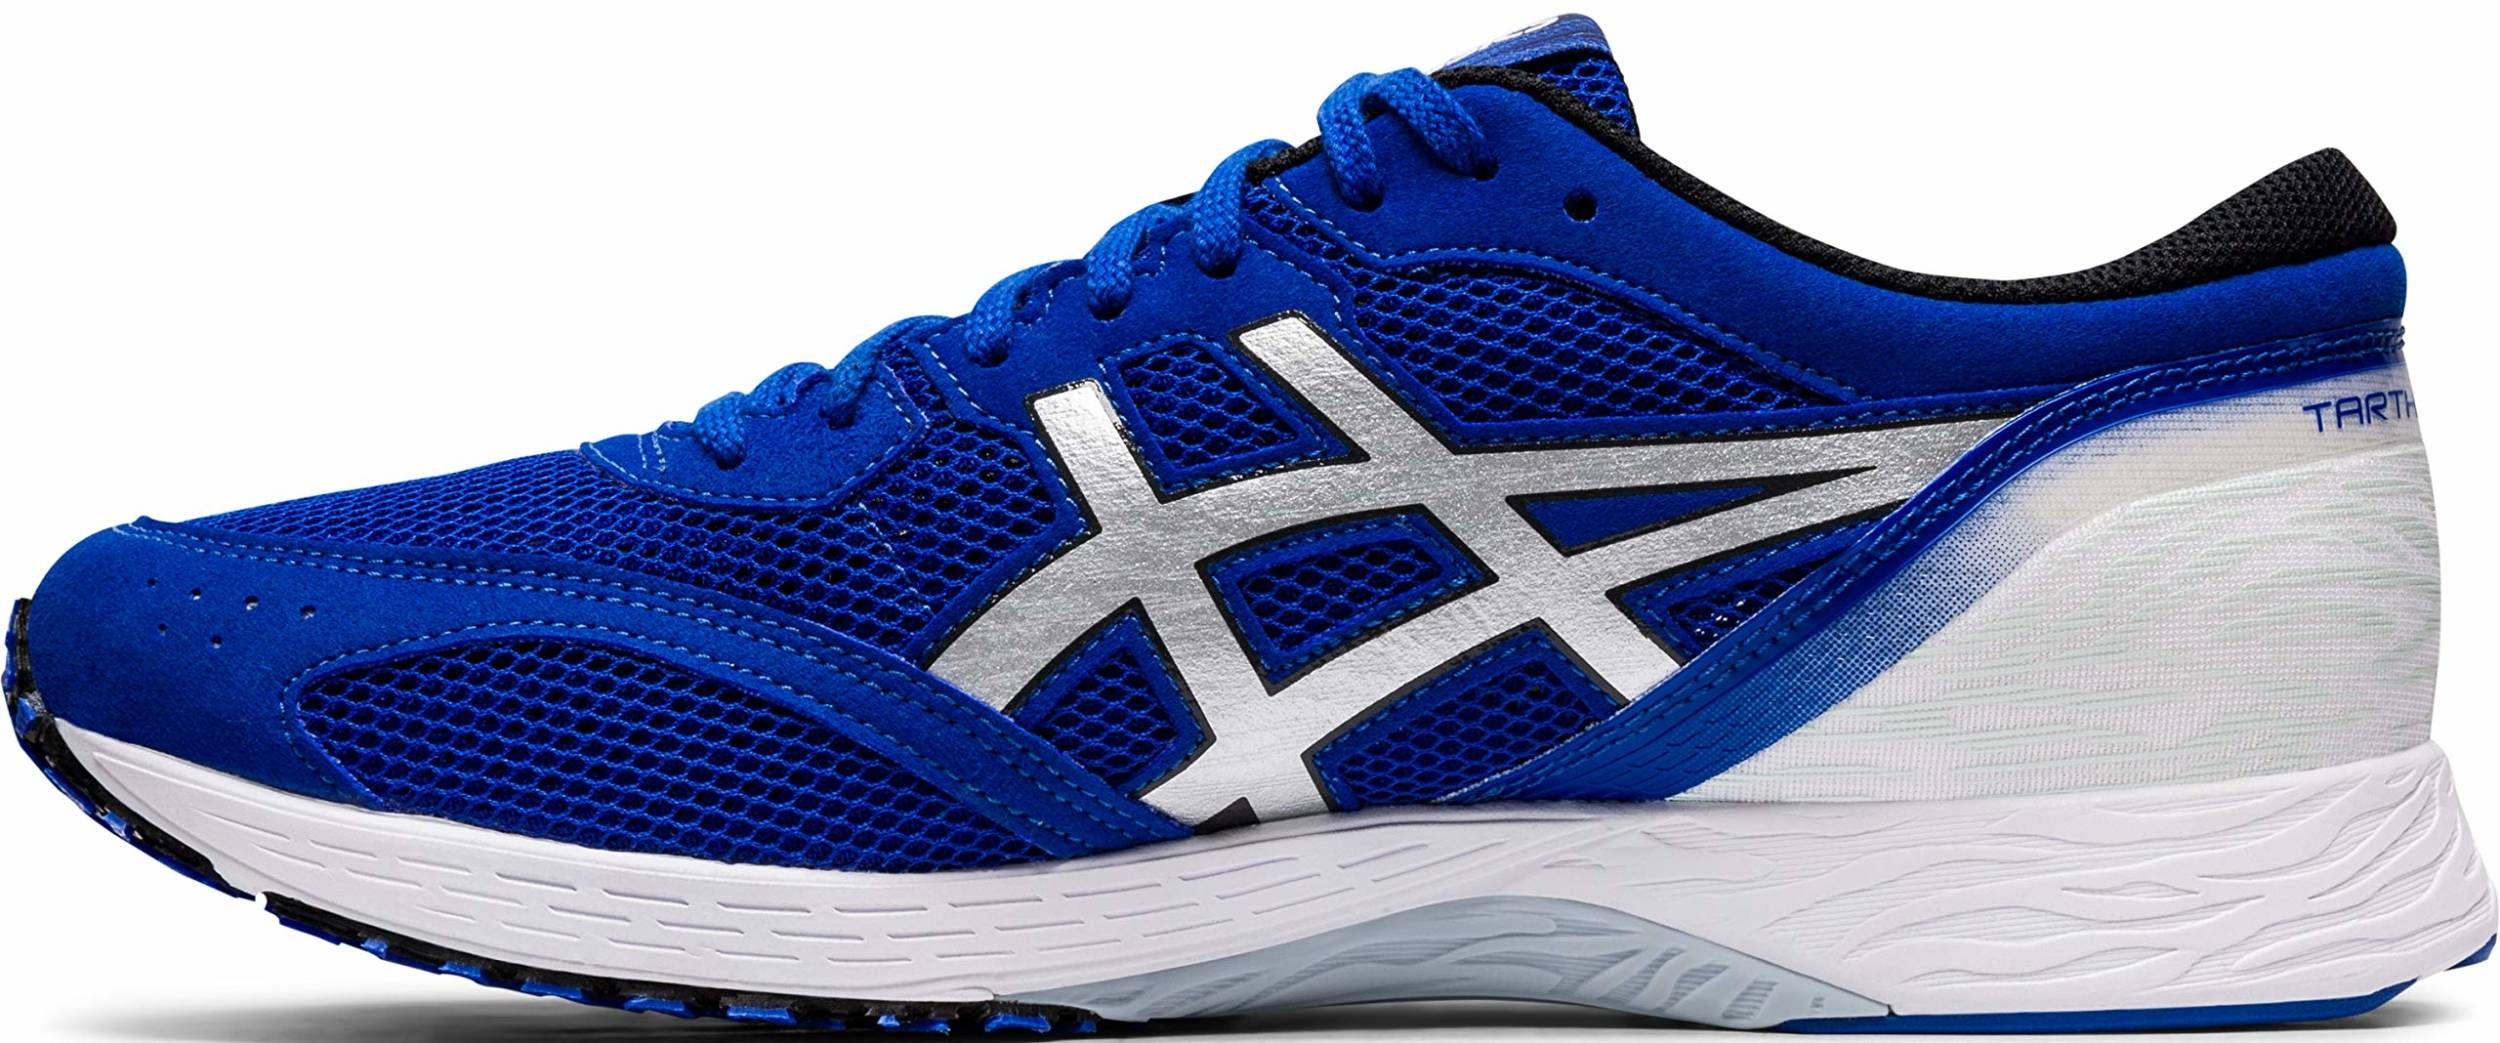 Only £72 + Review of Asics Tartheredge